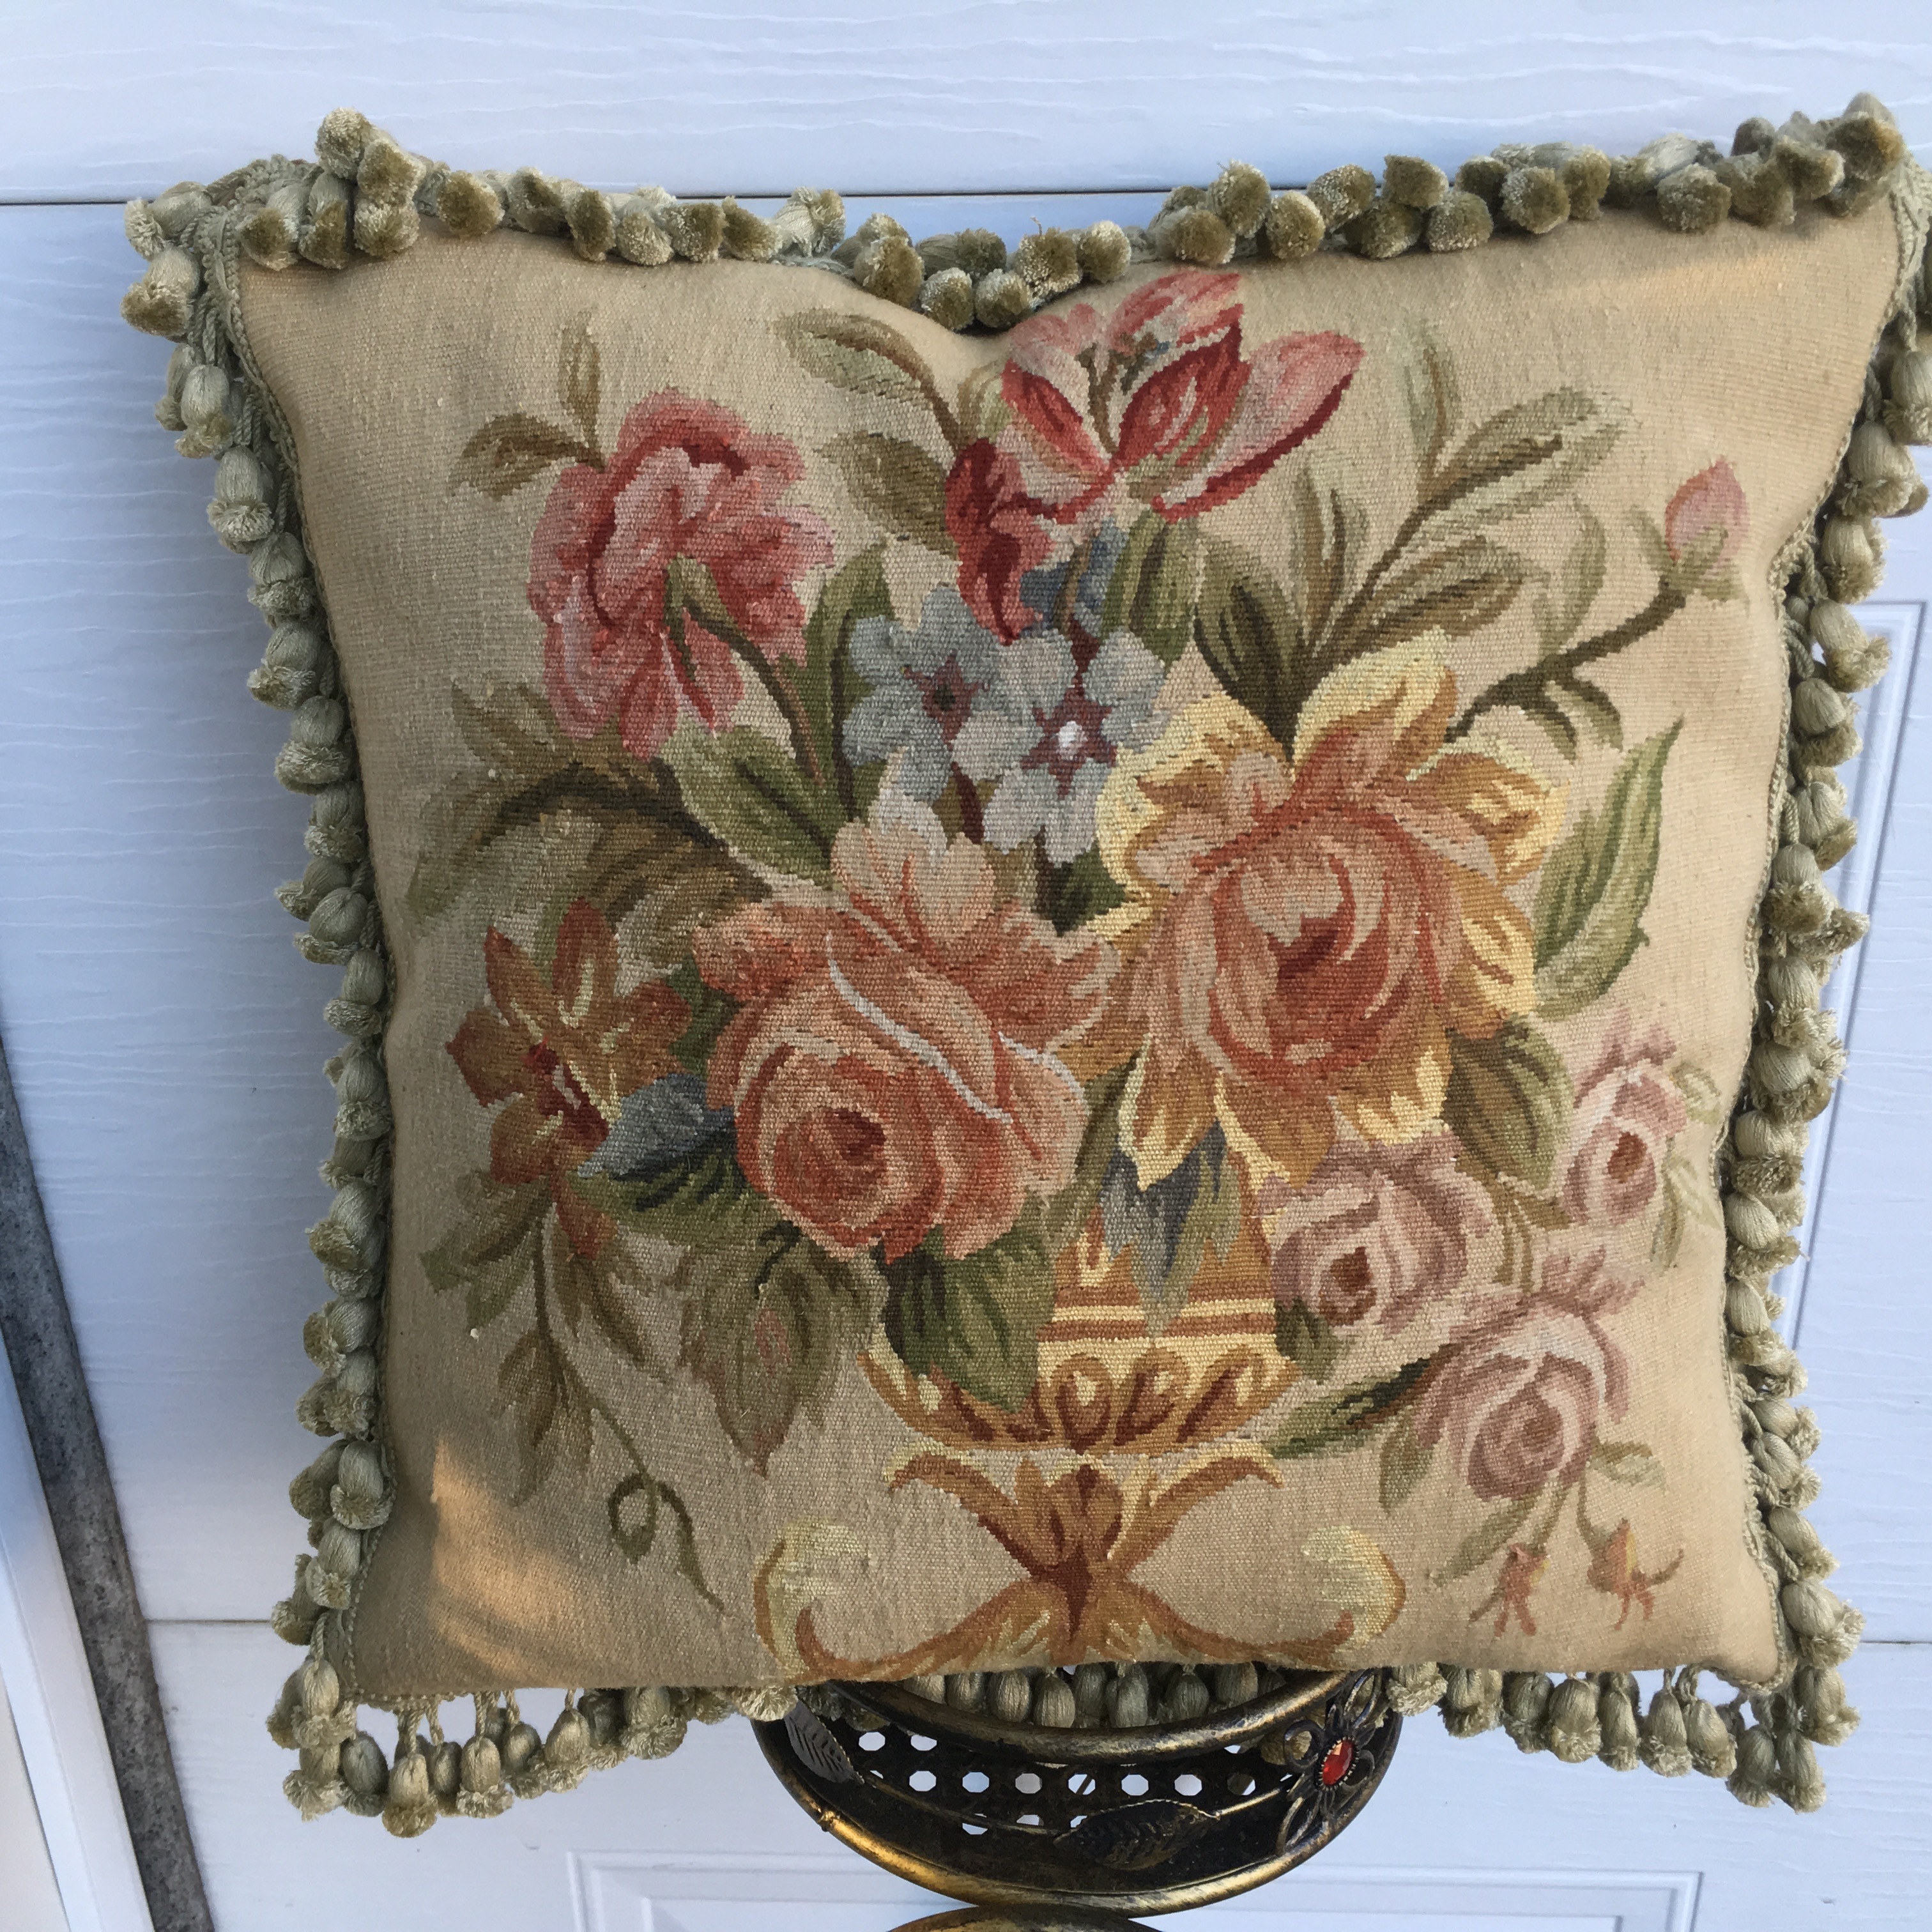 20″ x 20″ Handmade Antique Reproduction Gobelin Tapestry Wool Aubusson Cushion Cover Pillow Case 12980015